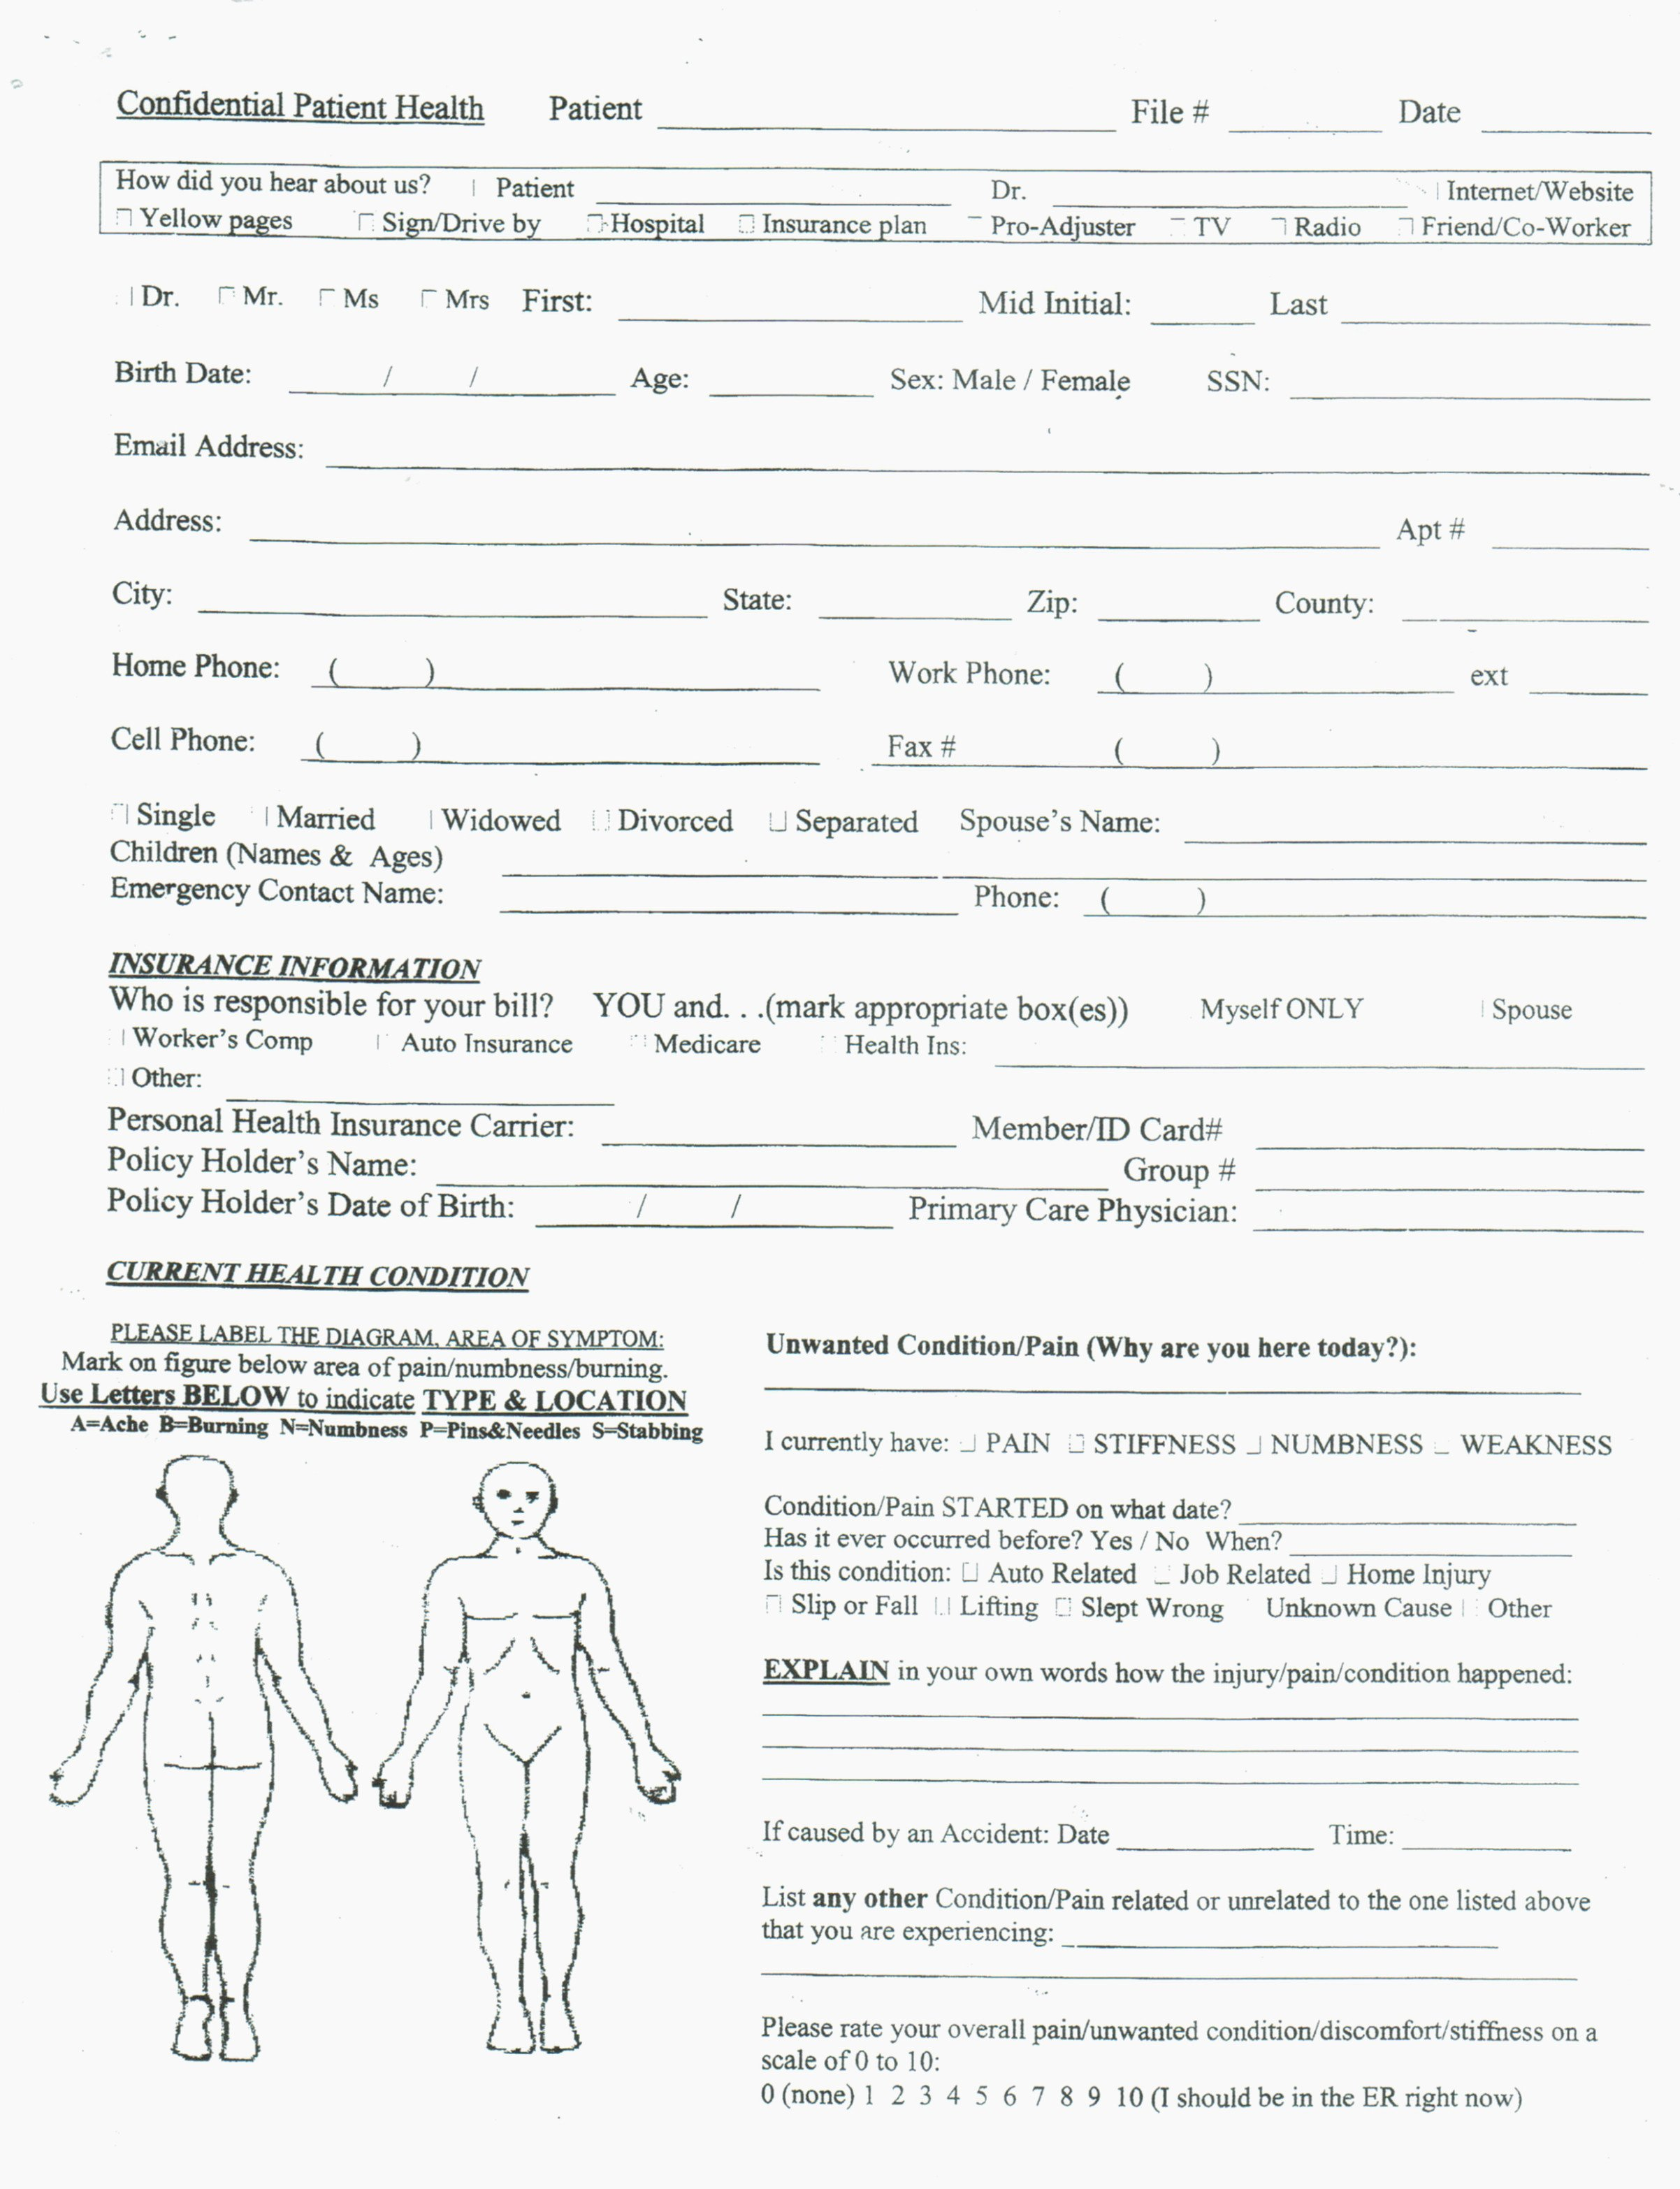 Patient Intake form Template New How to Leave Client Intake